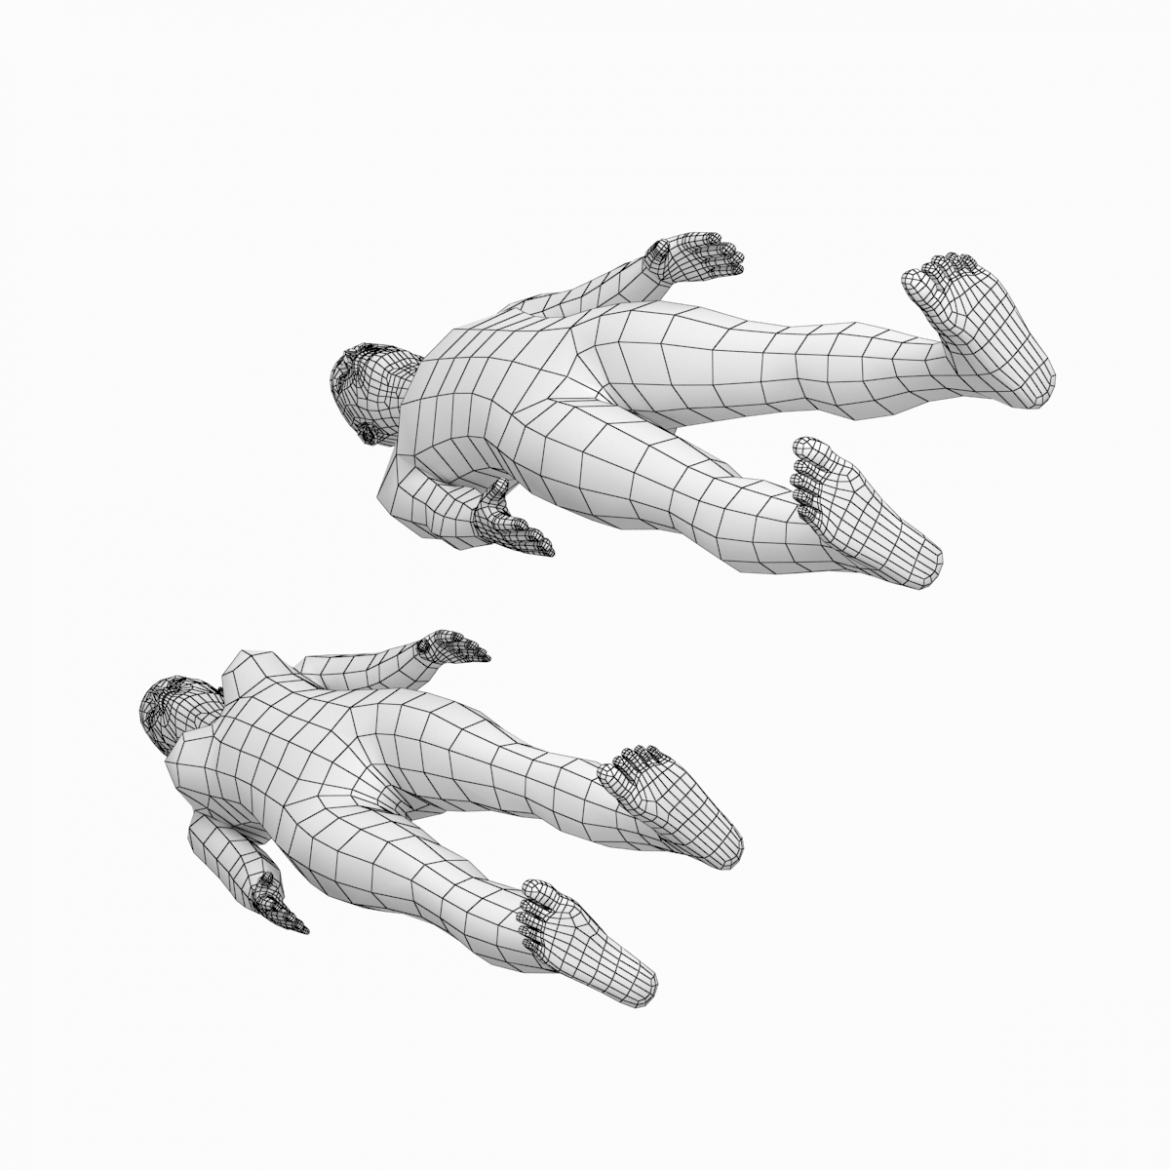 female and male deailed base mesh in rest pose 3d model 3ds max dxf dwg fbx c4d dae ma mb  obj 301298